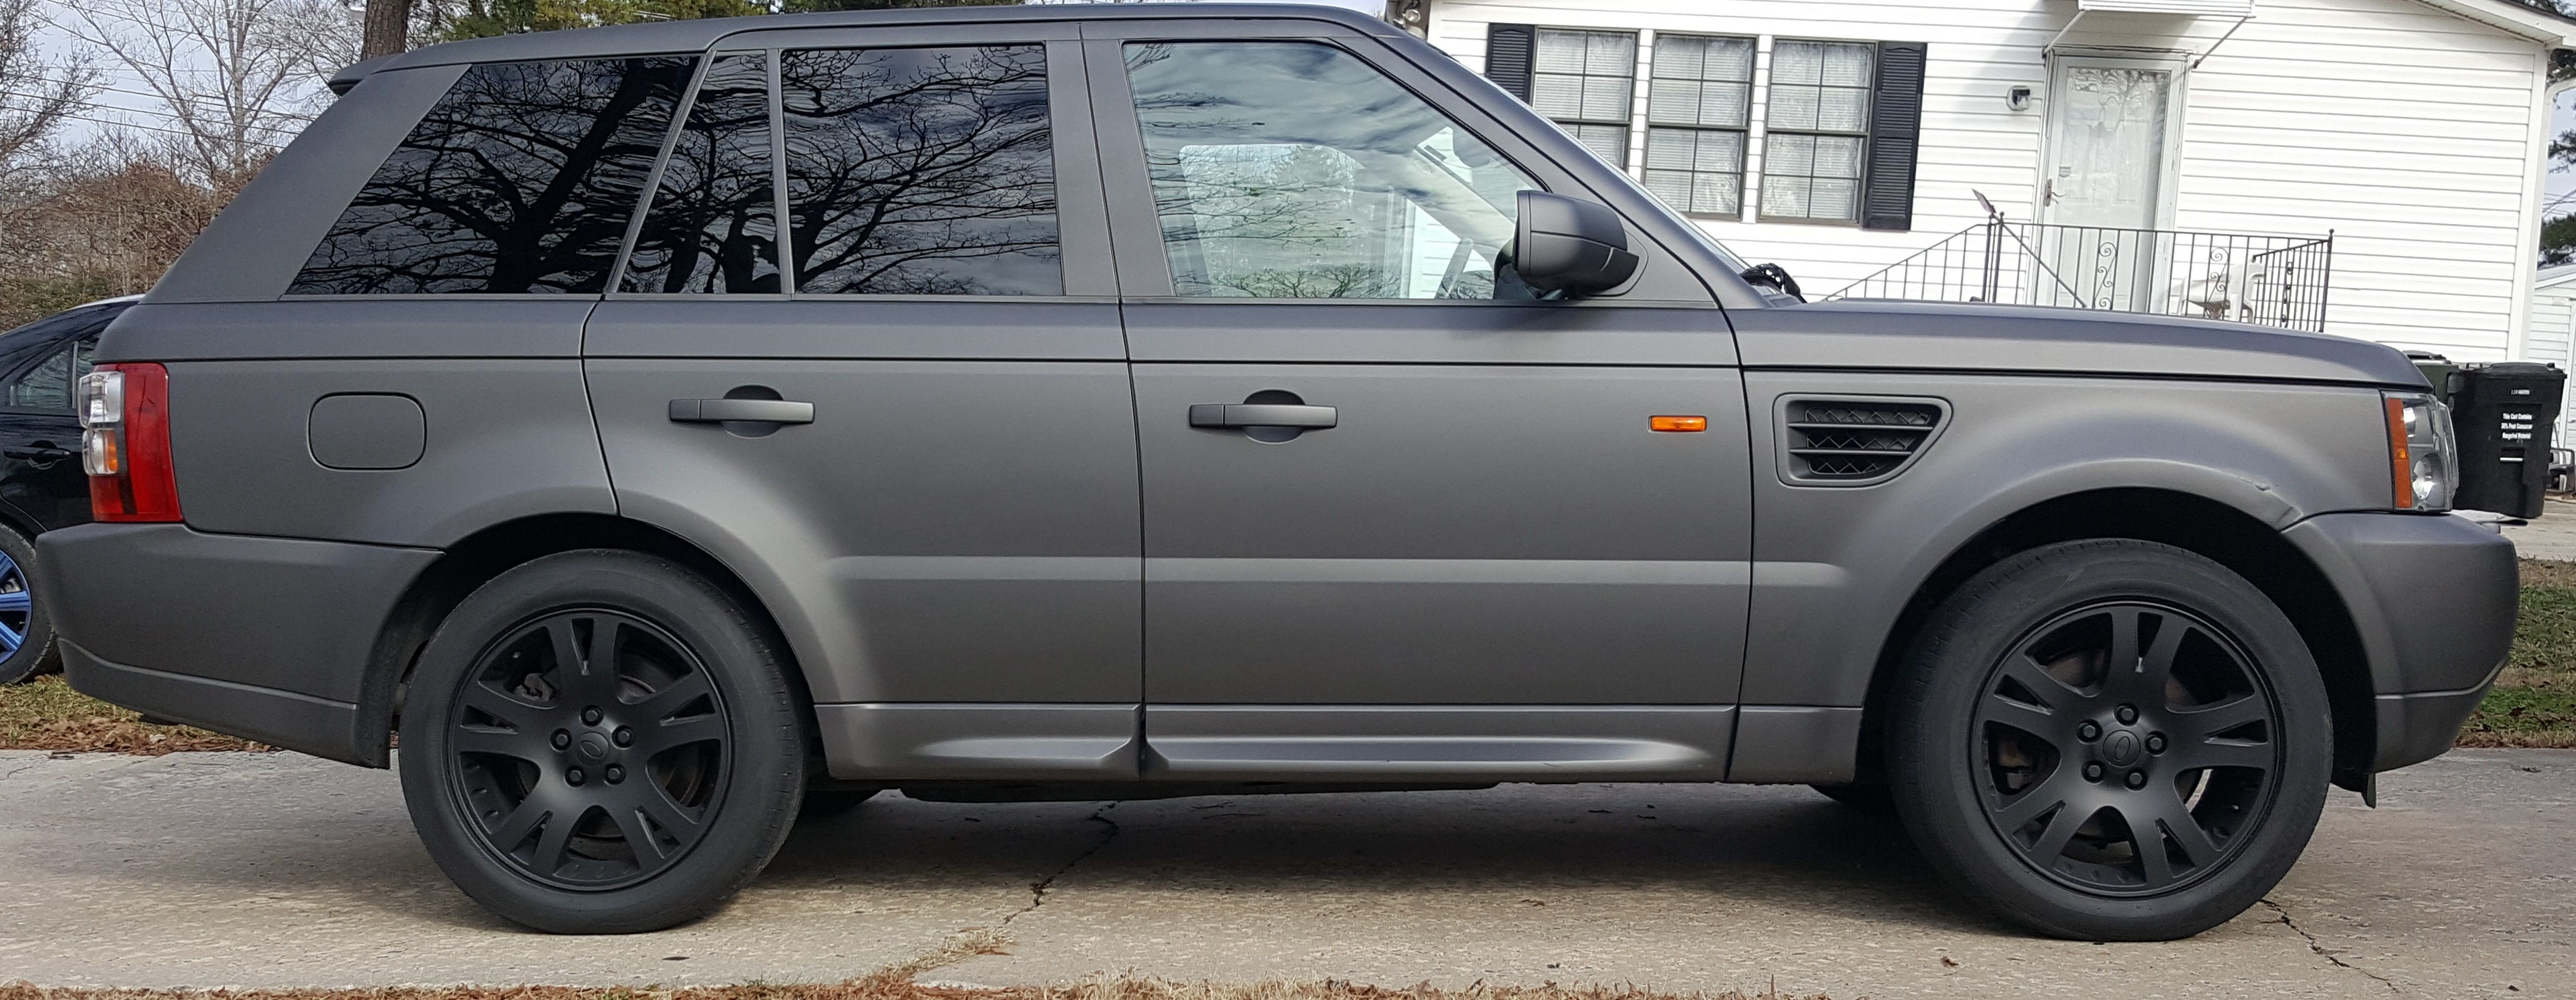 Anthracite Grey Range Rover Matte Black wheel all done with